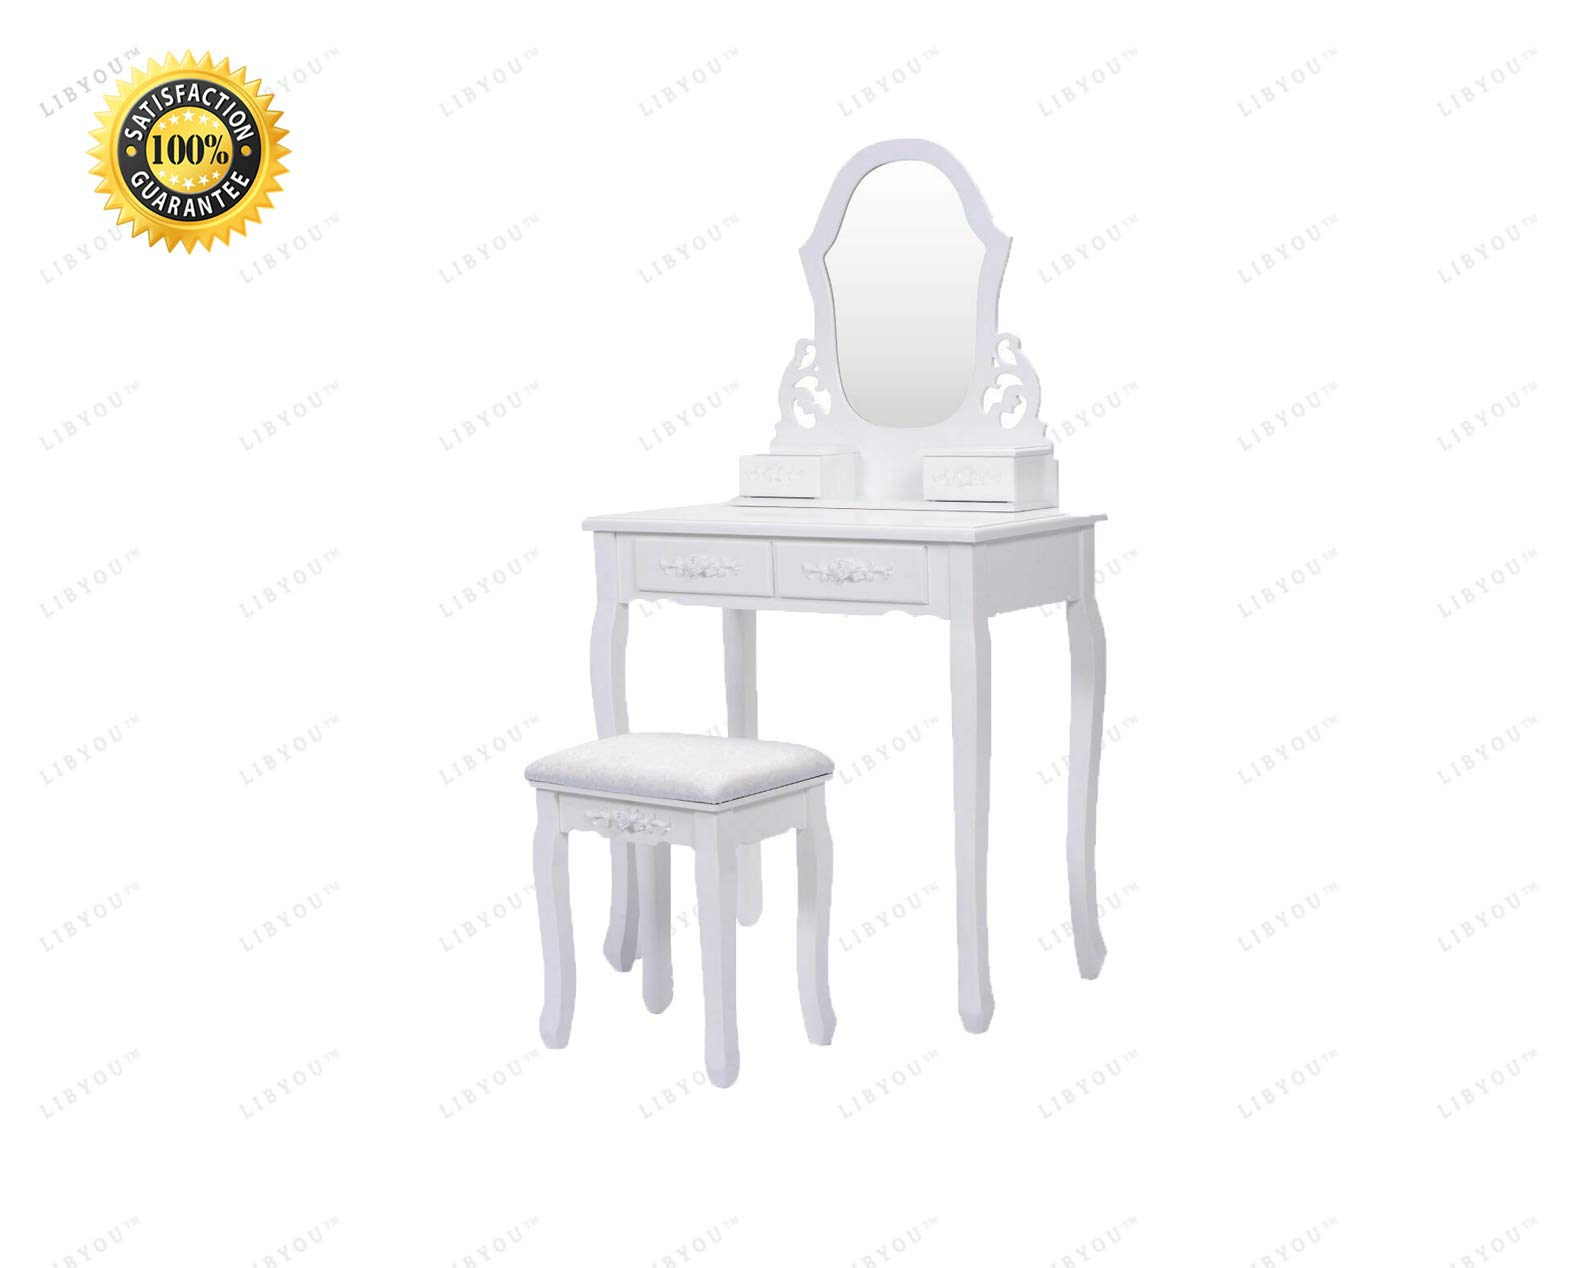 LIBYOU__Vanity Table Set,Dressing Table,Vanity Jewelry Wooden Table,Makeup Dressing Table Set,Vanity Makeup Dressing Set,Jewelry Wooden Table Stool,Jewelry Desk,Home Vanity Desk with Drawers